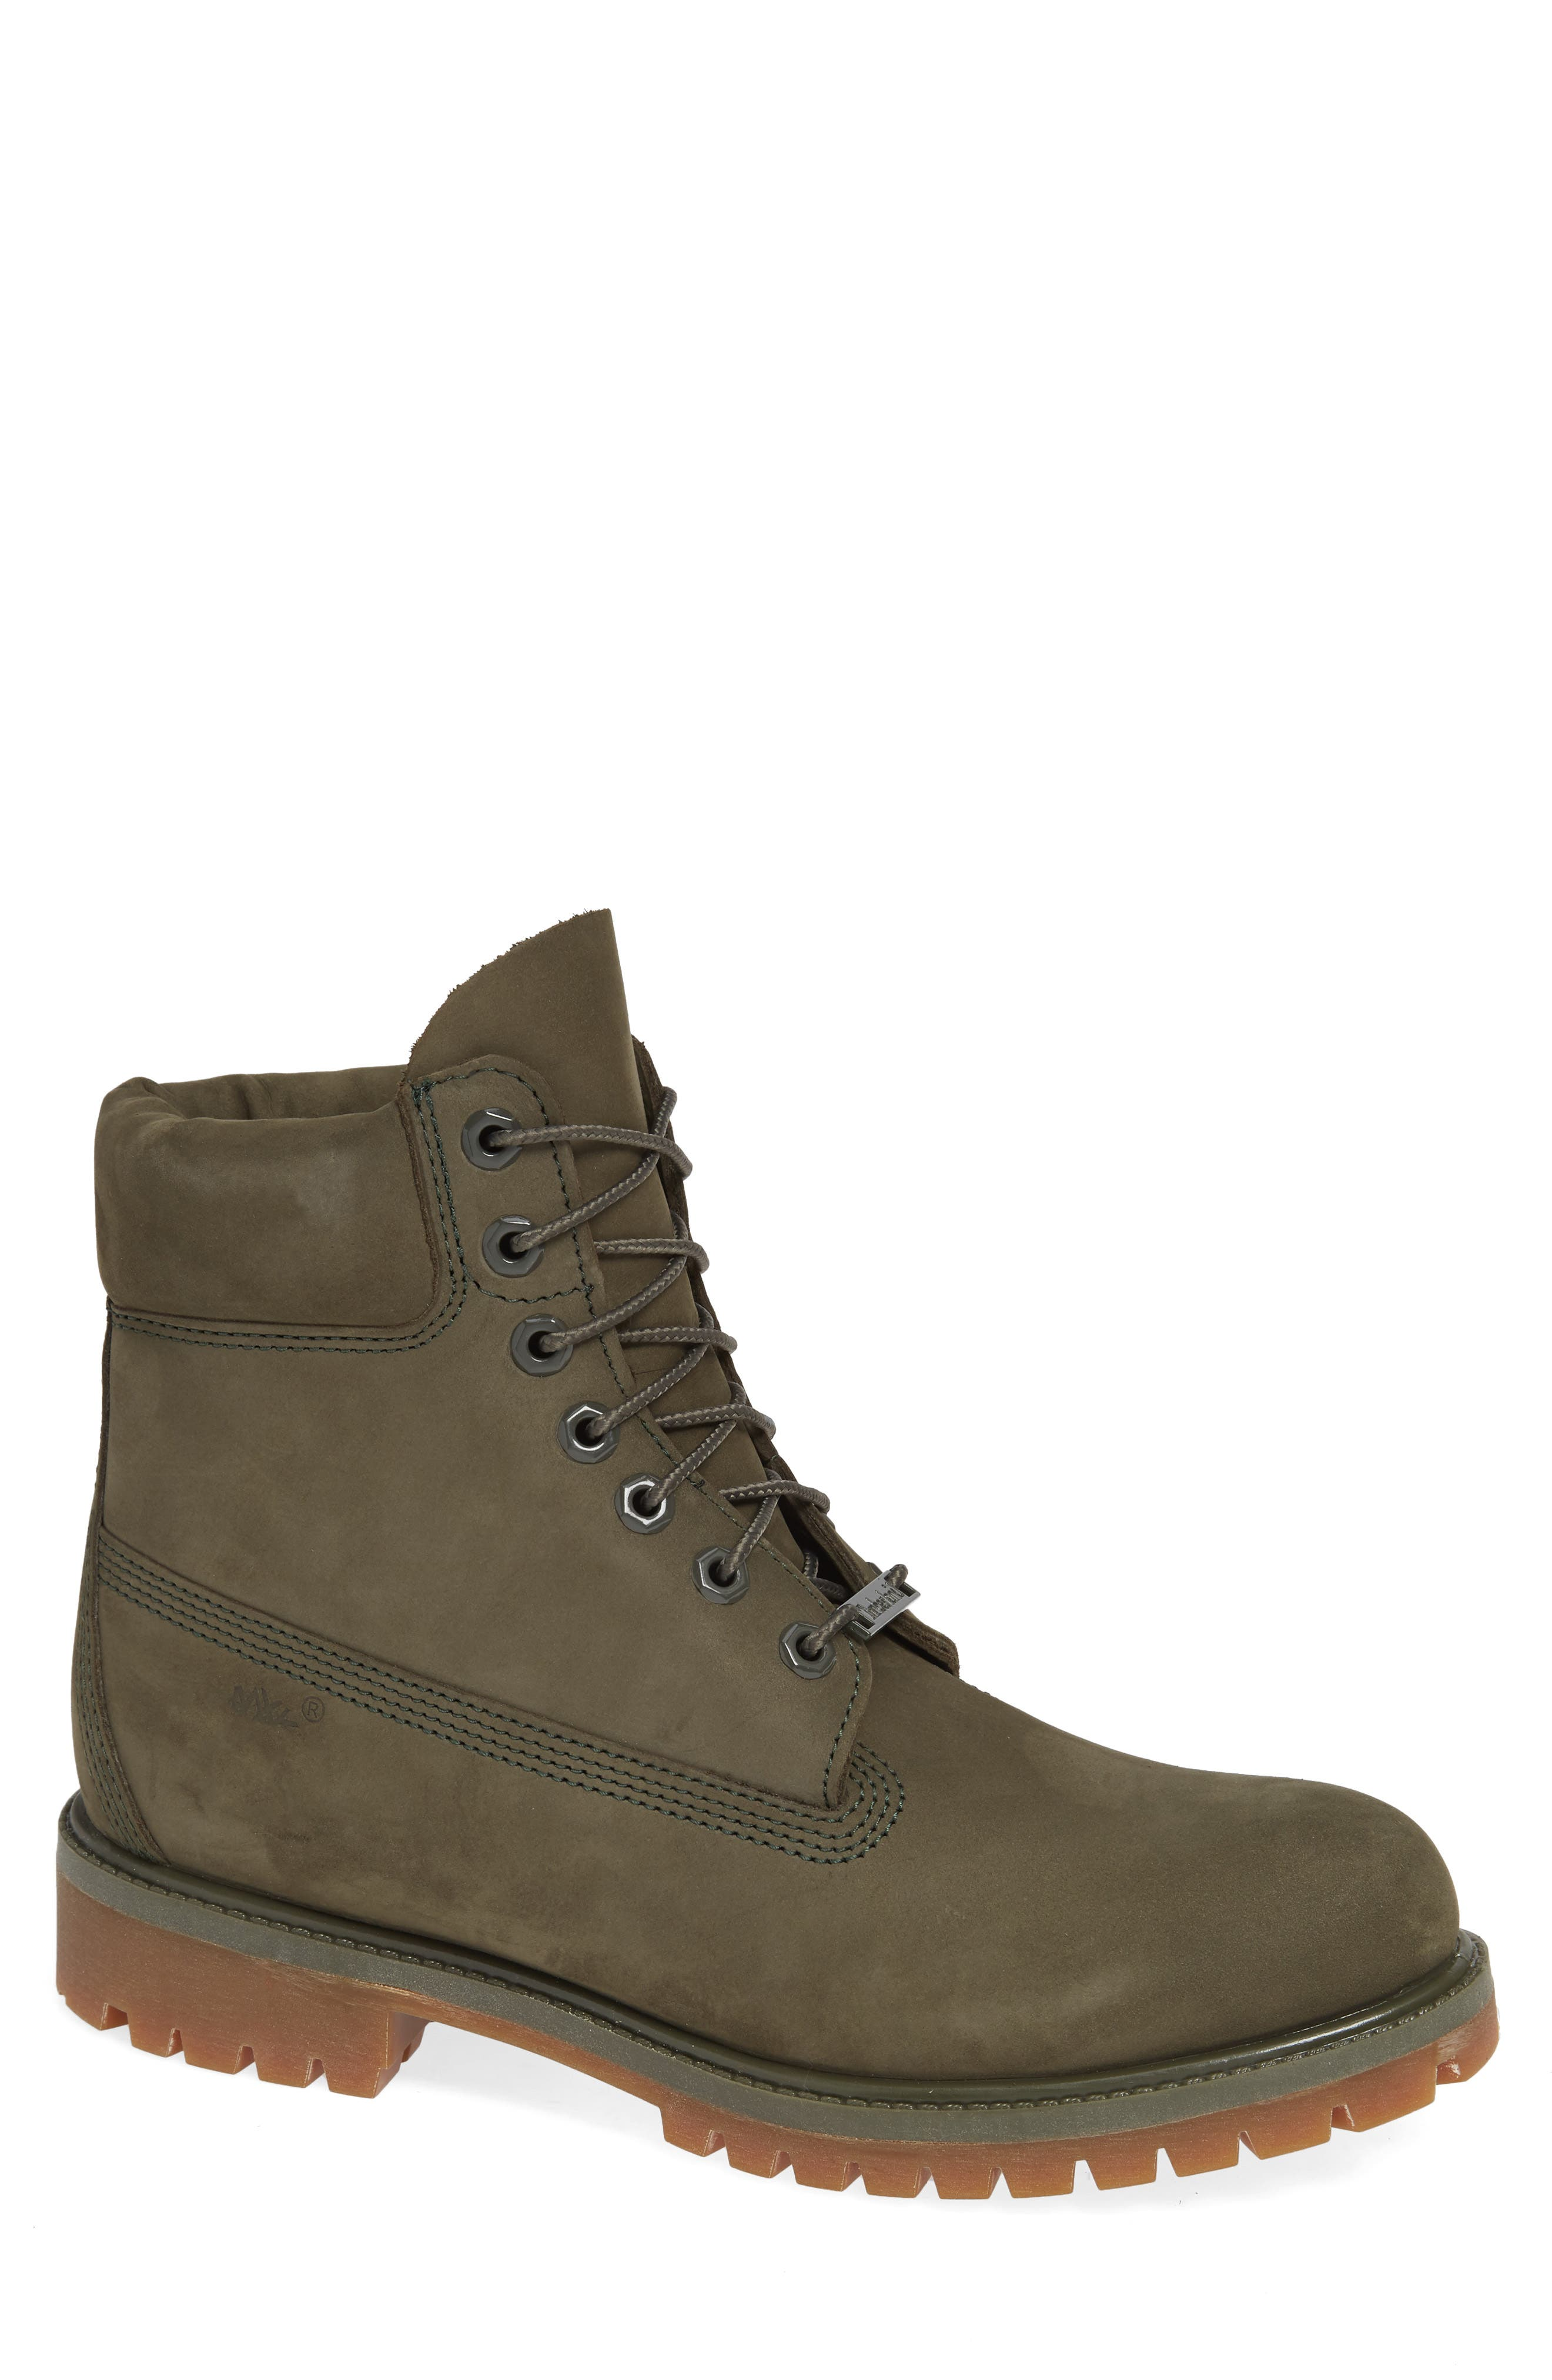 Six Inch Classic Waterproof Boots Series - Premium Waterproof Boot,                             Main thumbnail 1, color,                             GRAPE LEAF LEATHER